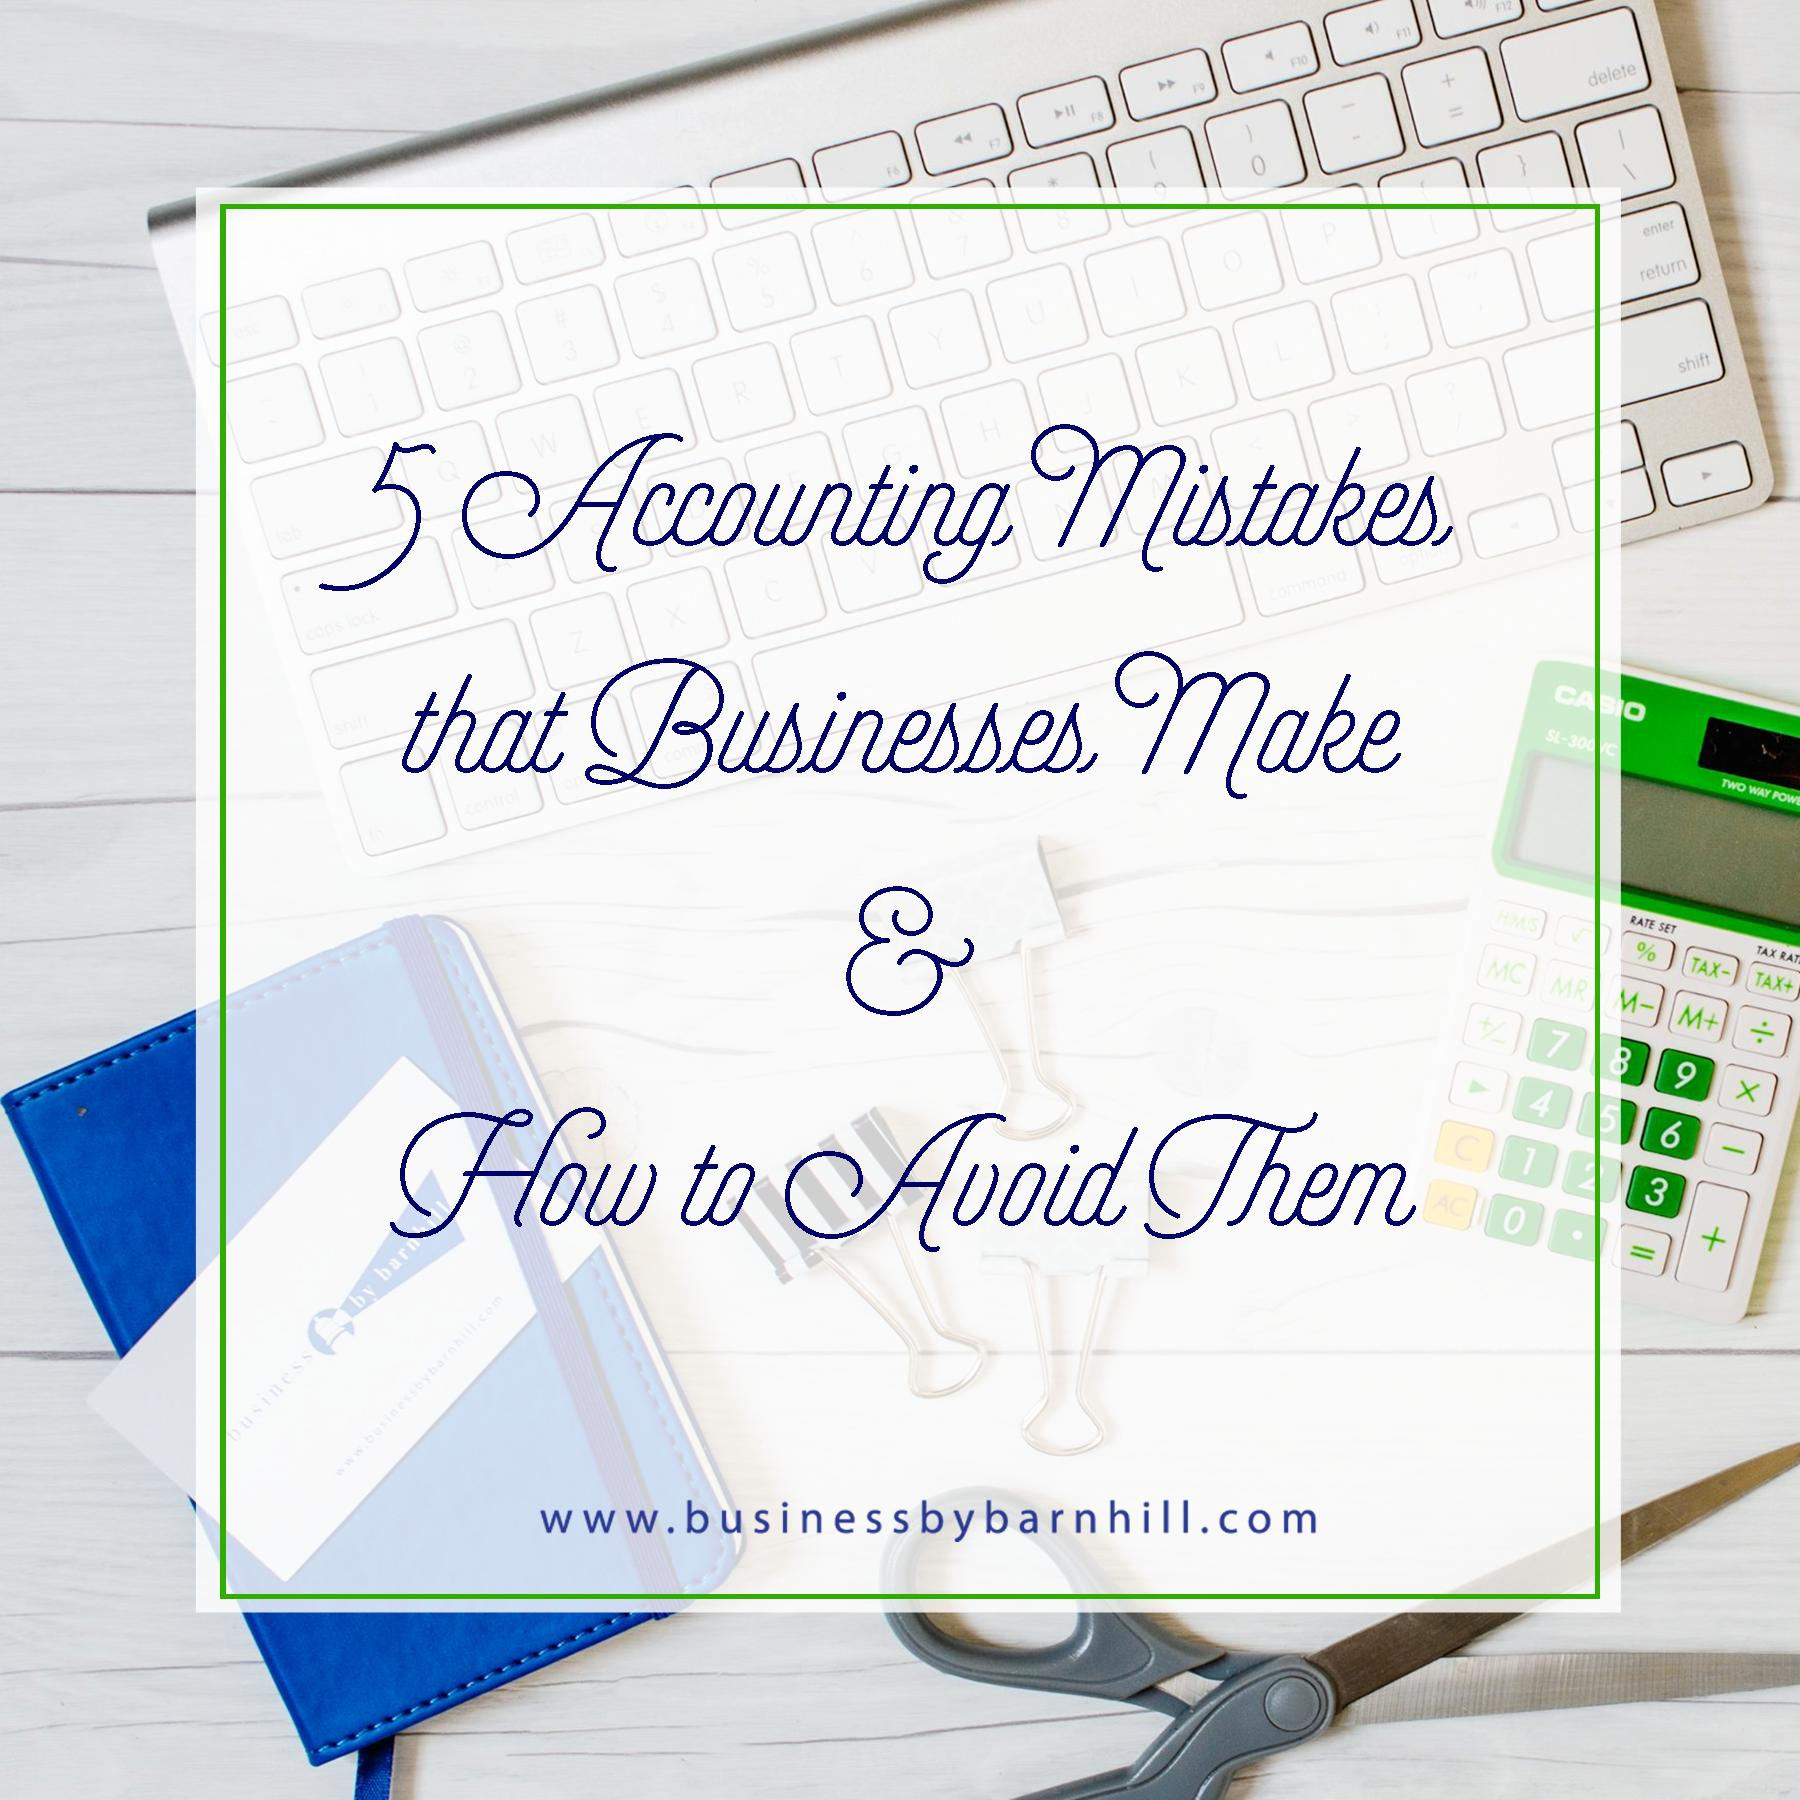 business by barnhill 5 accounting mistakes that businesses make.jpg